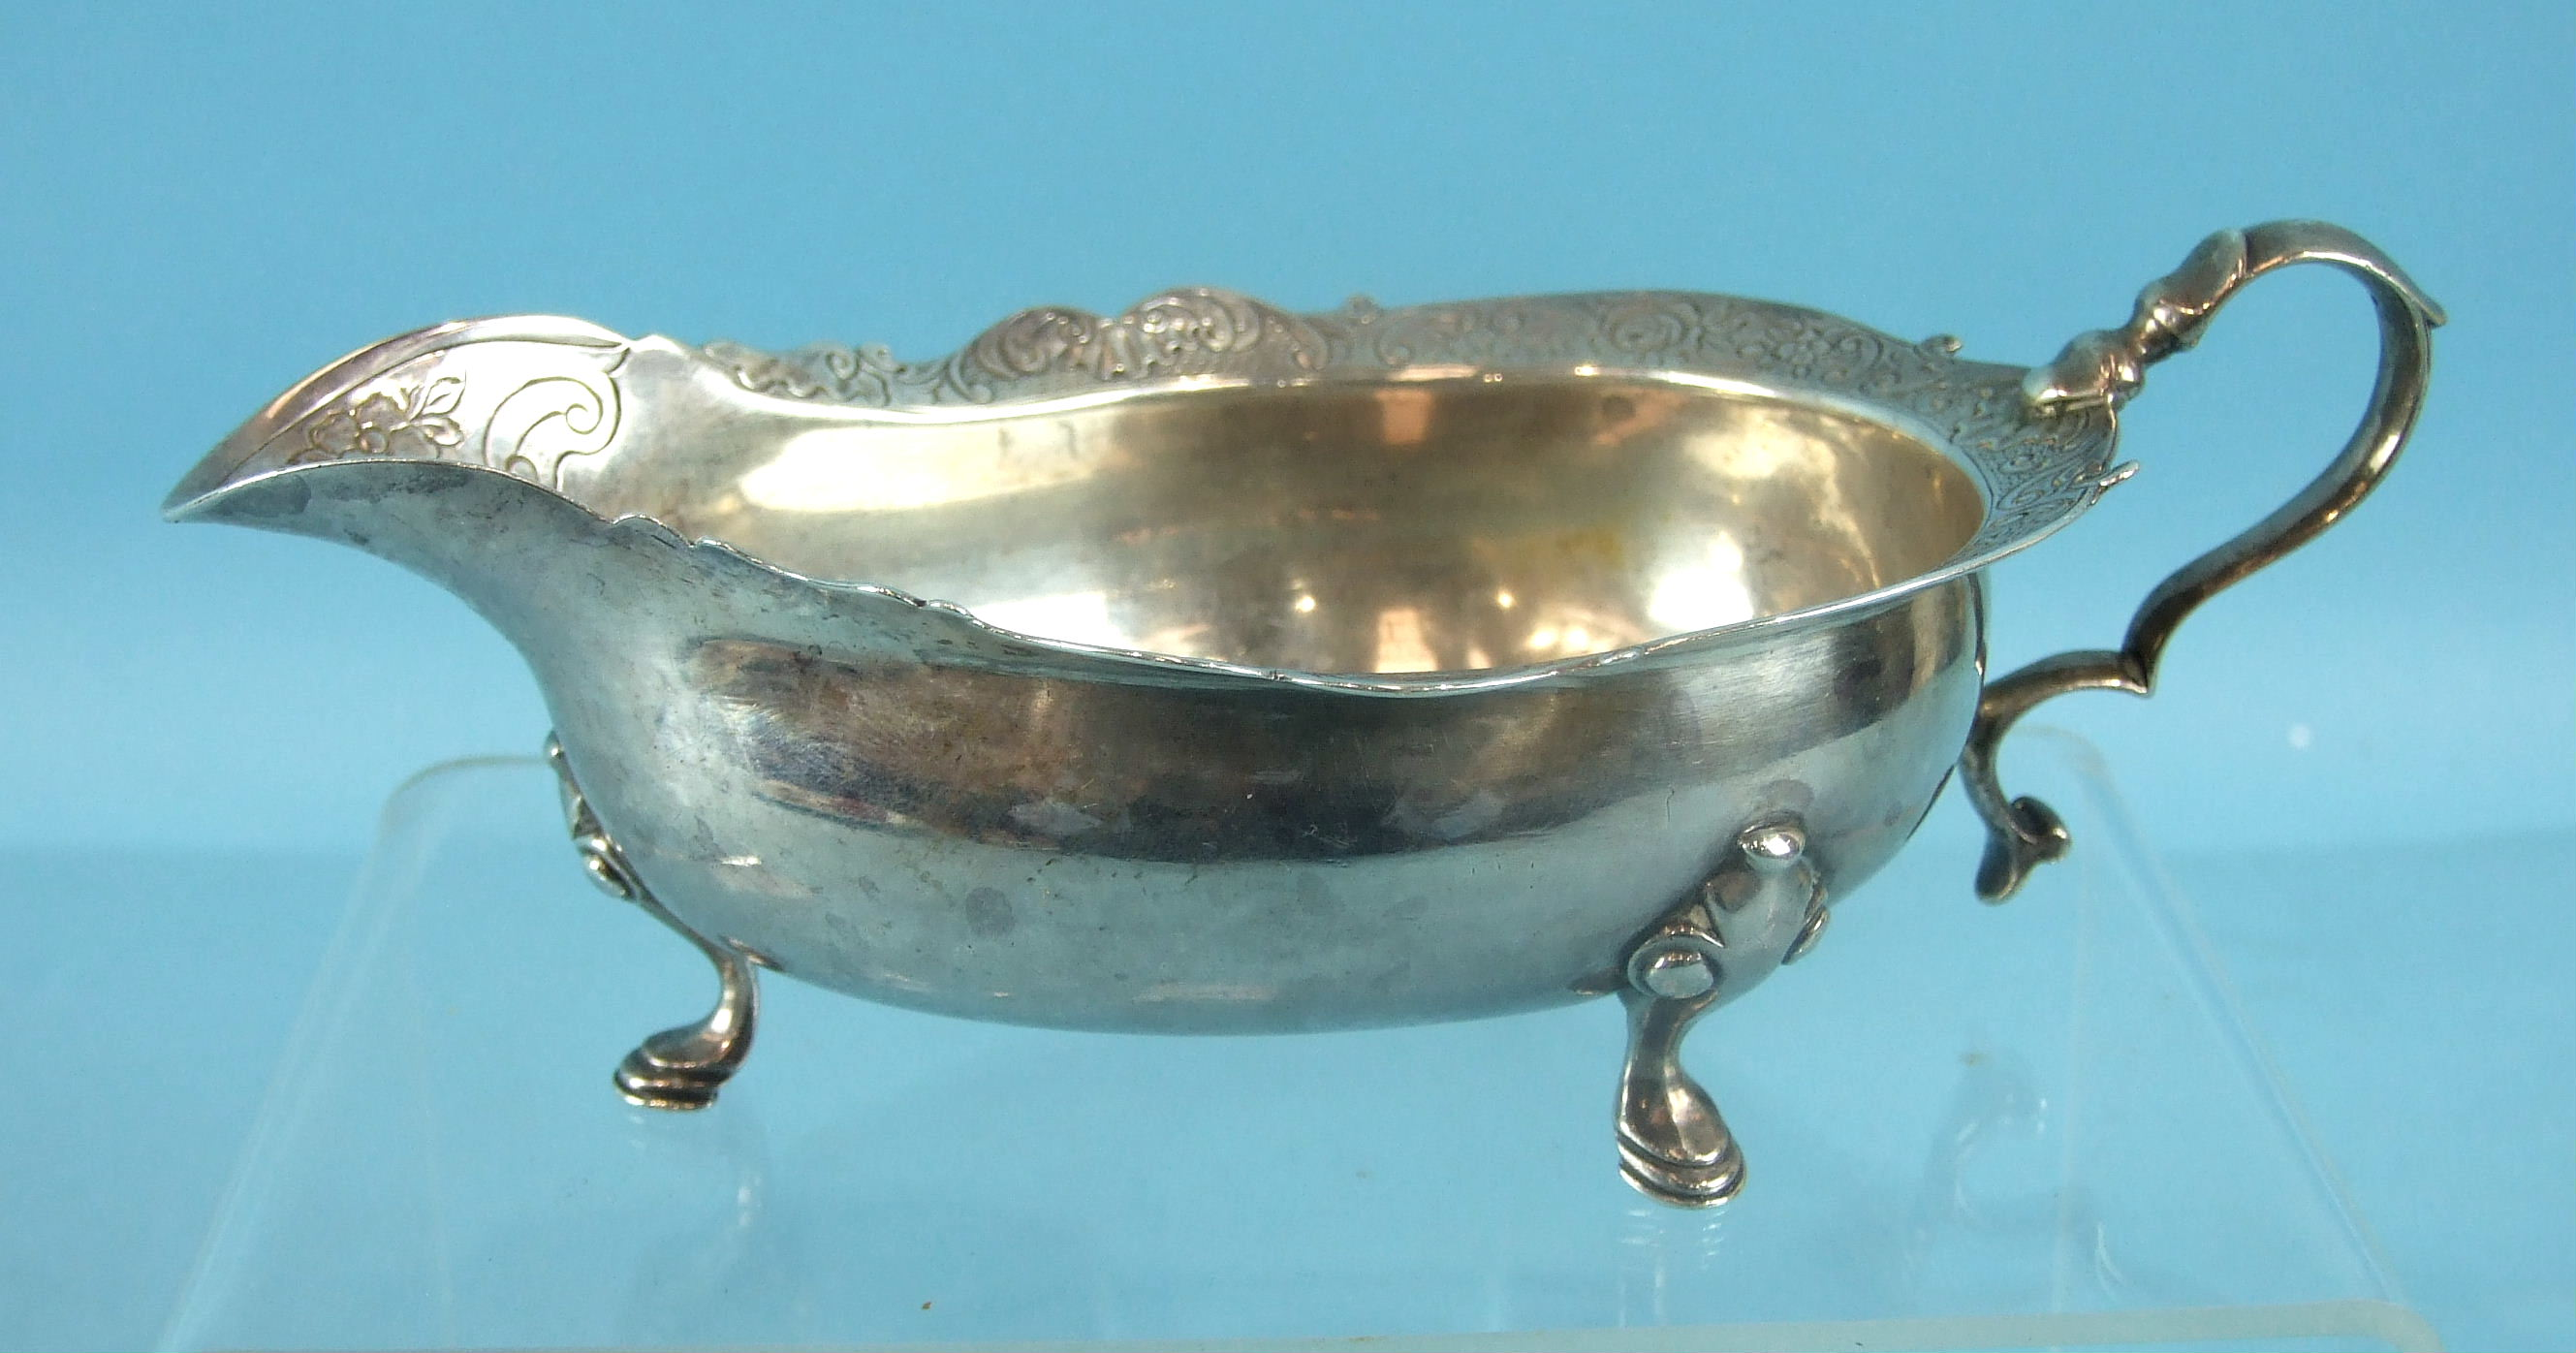 Lot 329 - A George II Scottish cream or sauce boat on three hoof feet, with a shaped and chased rim and scroll